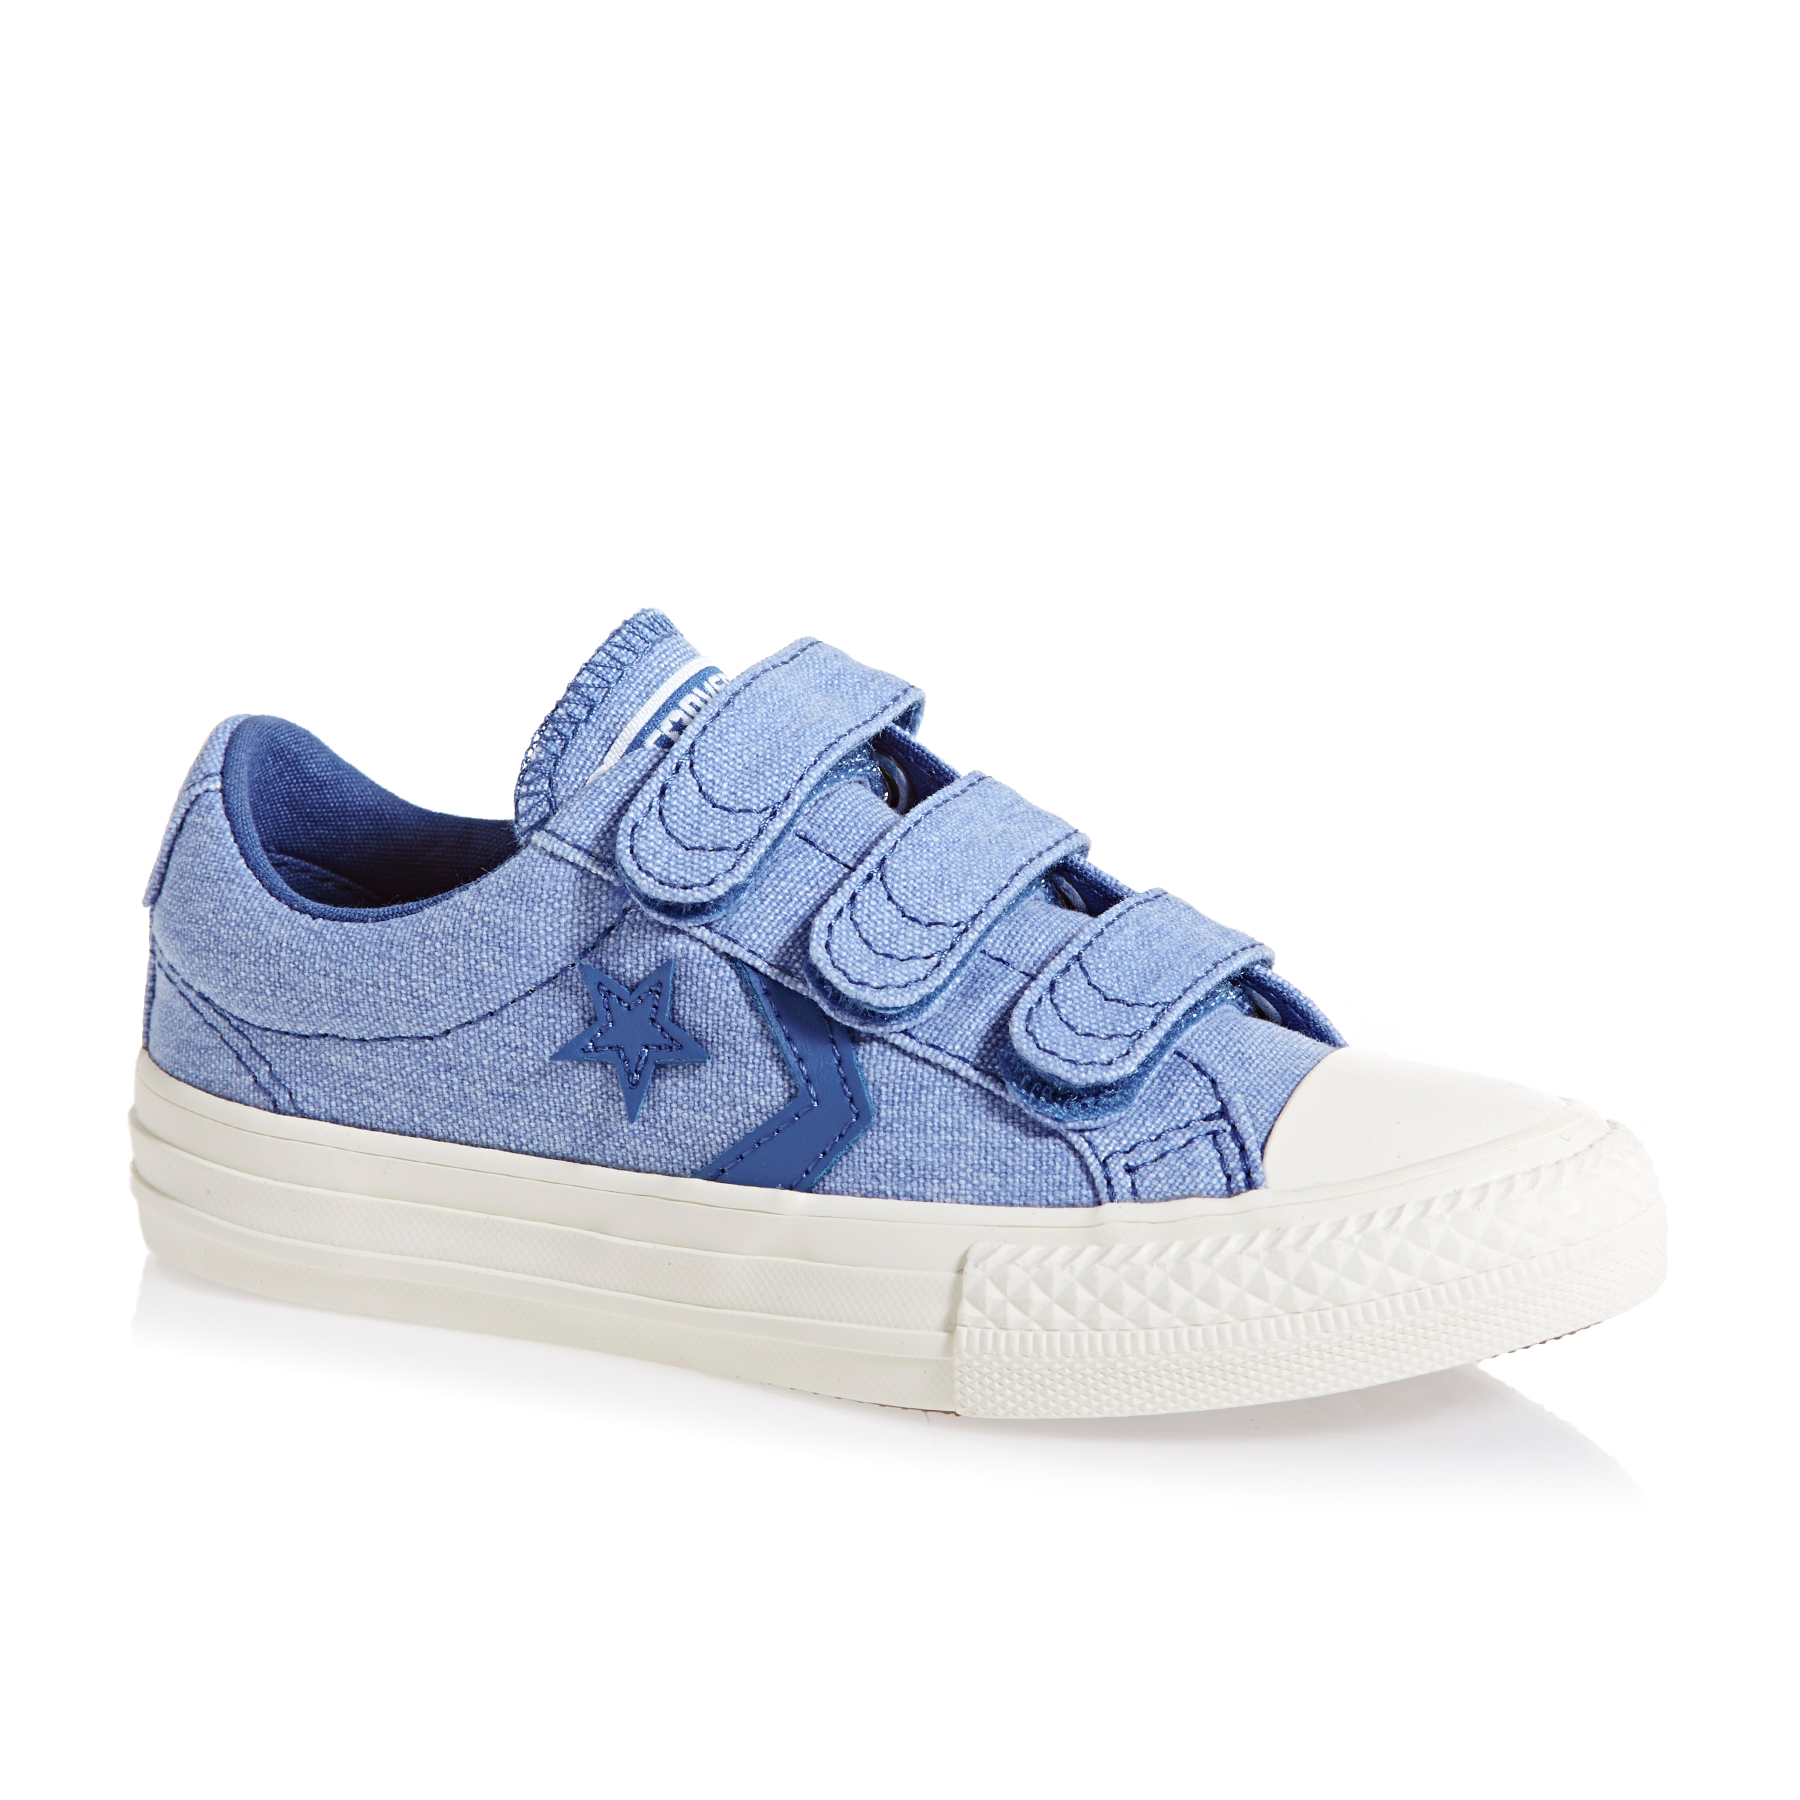 Converse Star Player Ev 3v Boys Shoes | Free Delivery Options